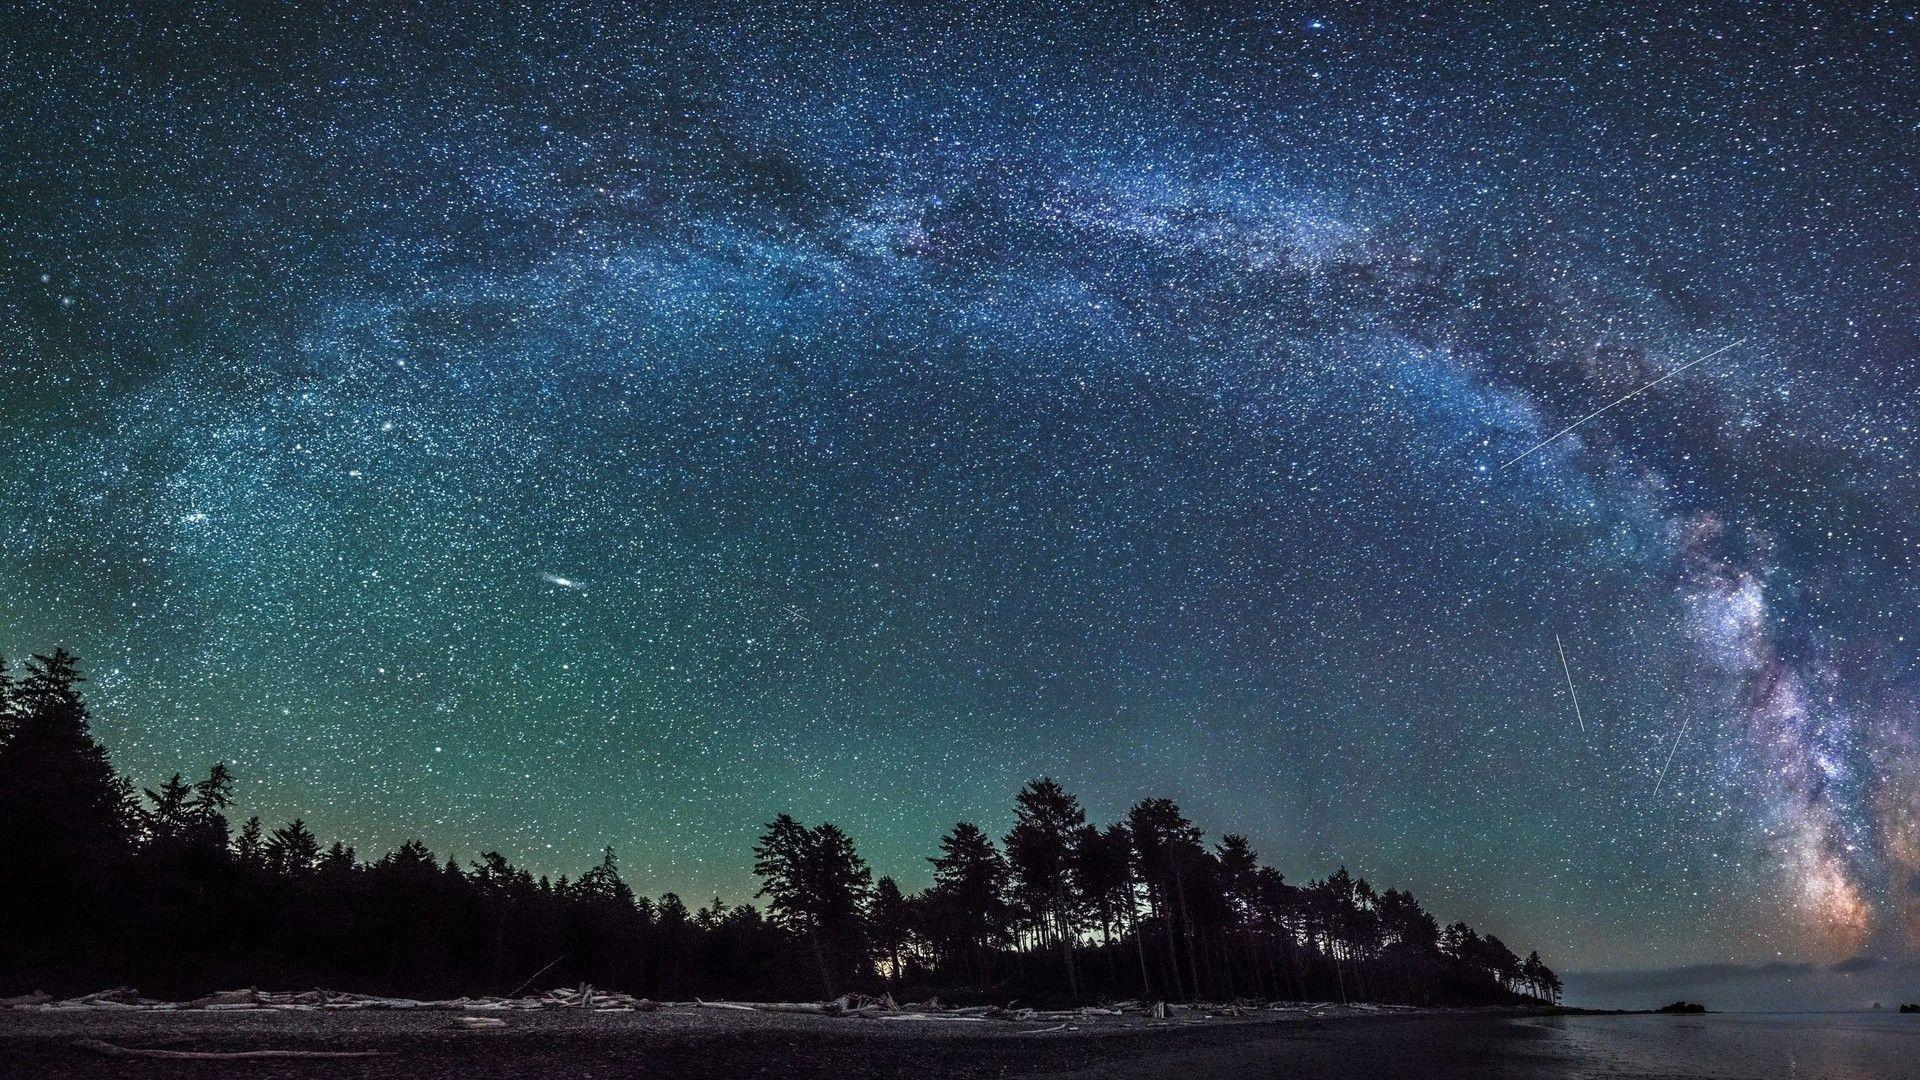 Milky Way Photos Hd Hd Widescreen 11 HD Wallpapers